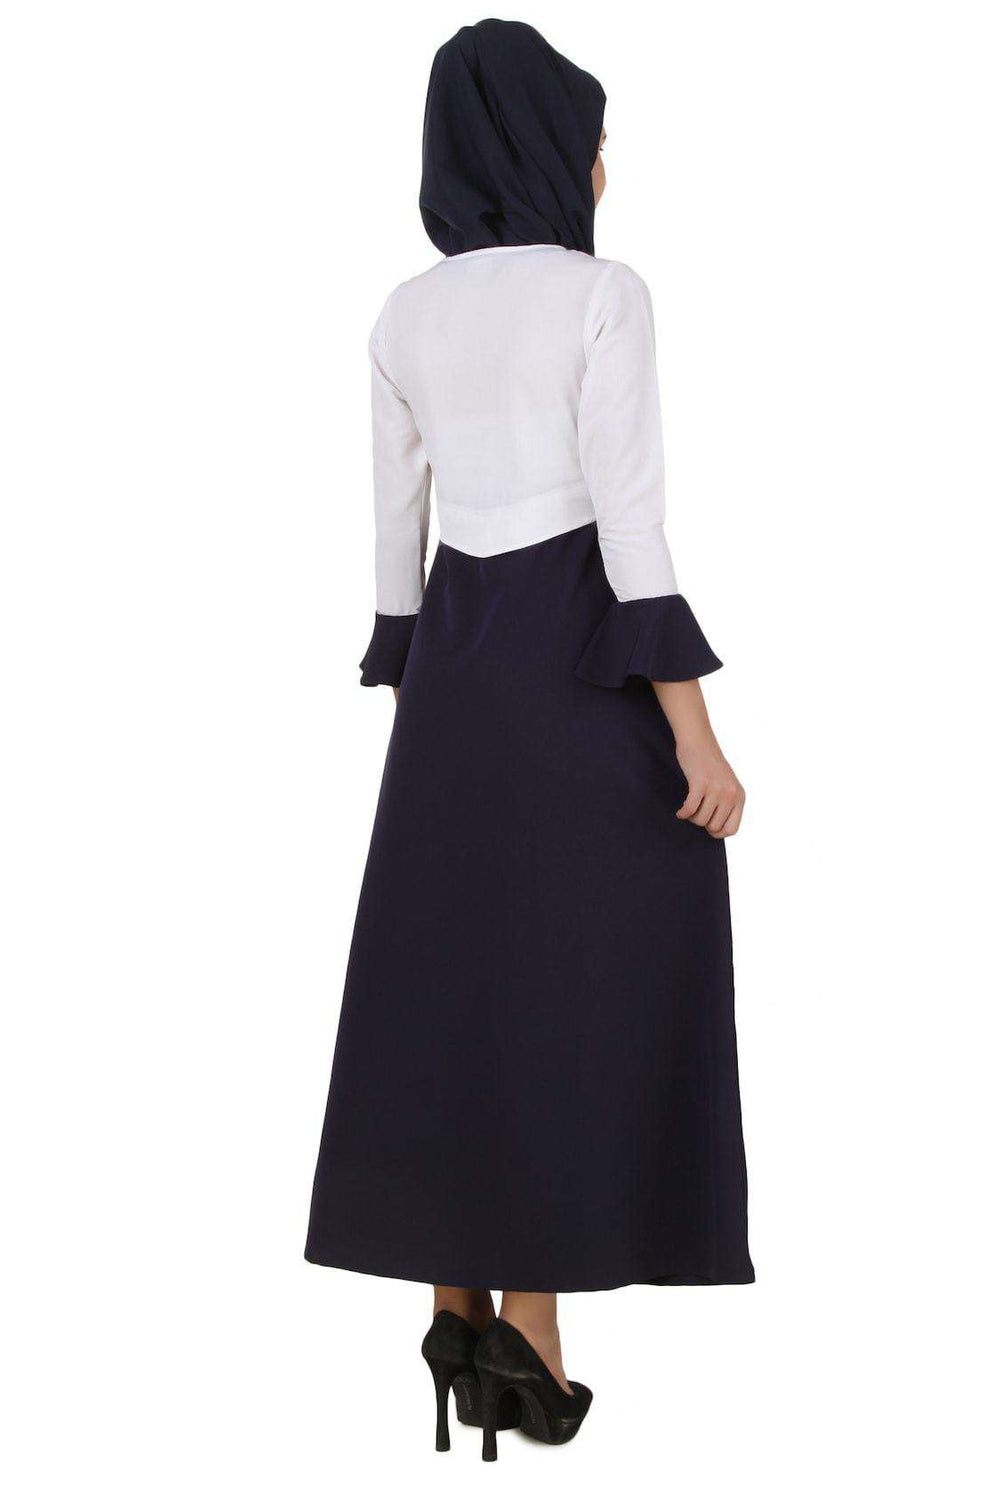 Eiman White & Navy Blue Kashibo Abaya Back